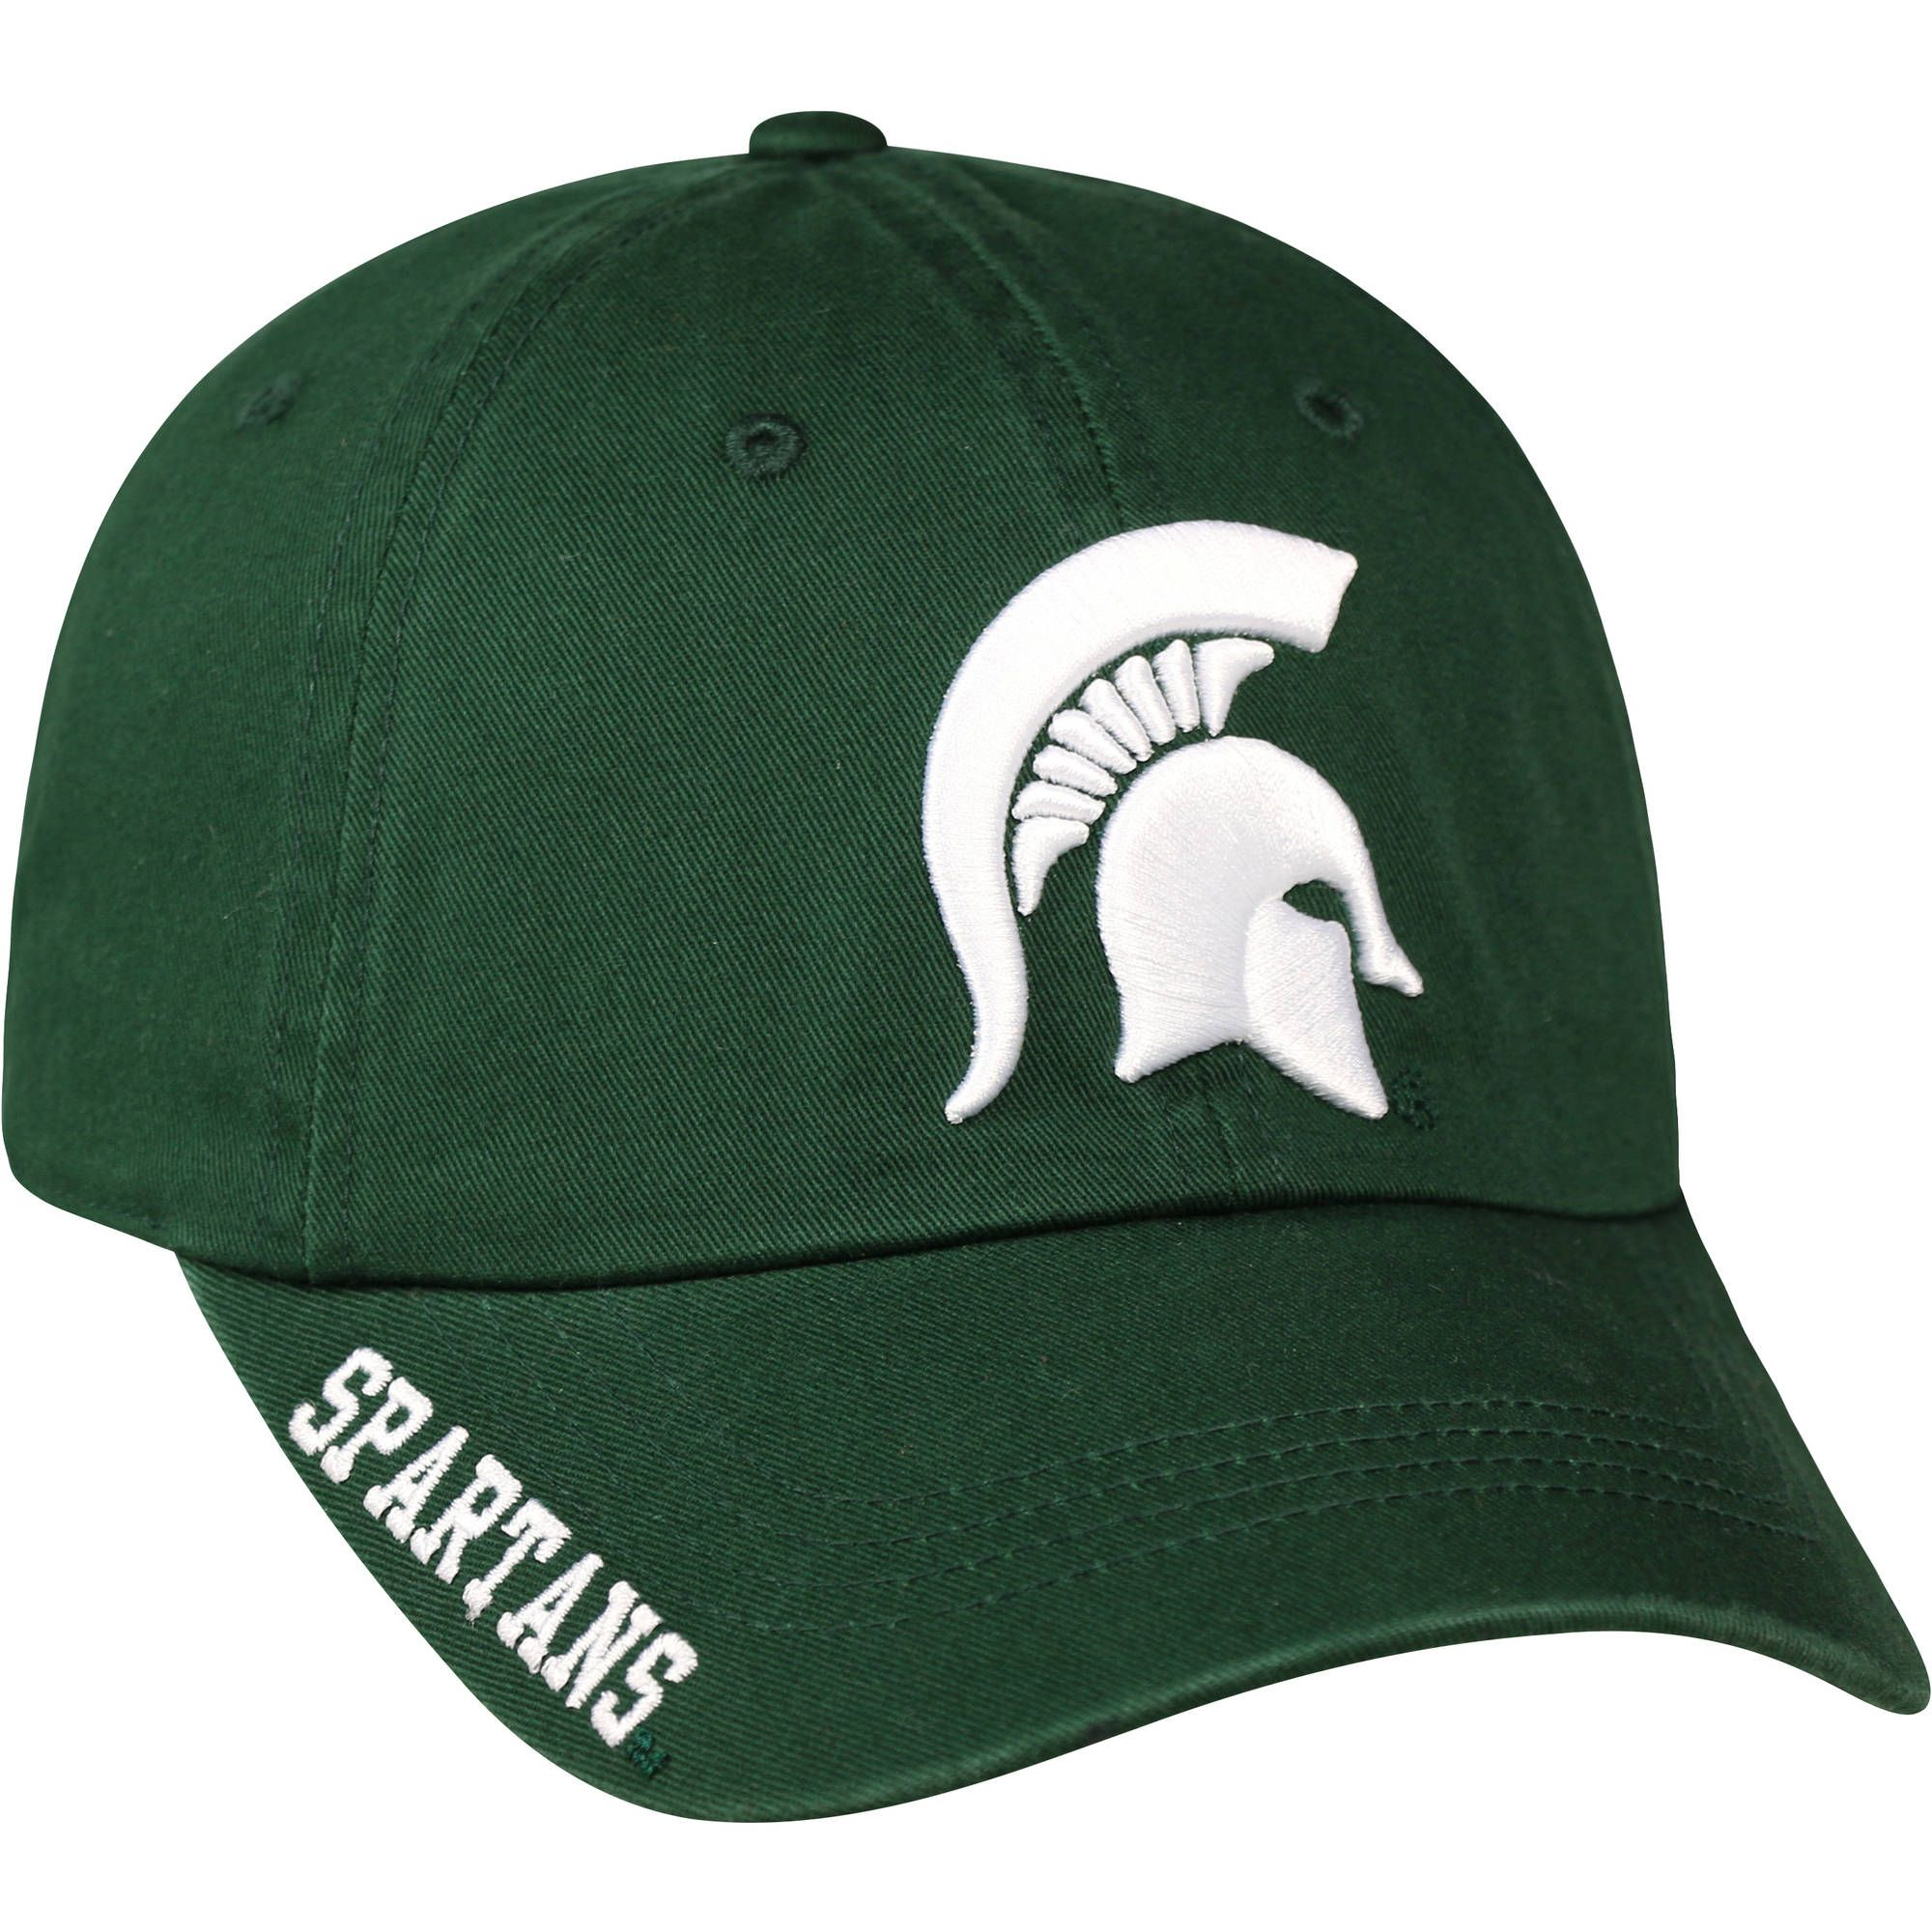 the latest af9be 9a072 NCAA Michigan State Spartans Team Cap  michiganstatespartans  michiganstate   michiganstateuniversity  spartans  sportscenter  msu  msucheer  basketball  ...